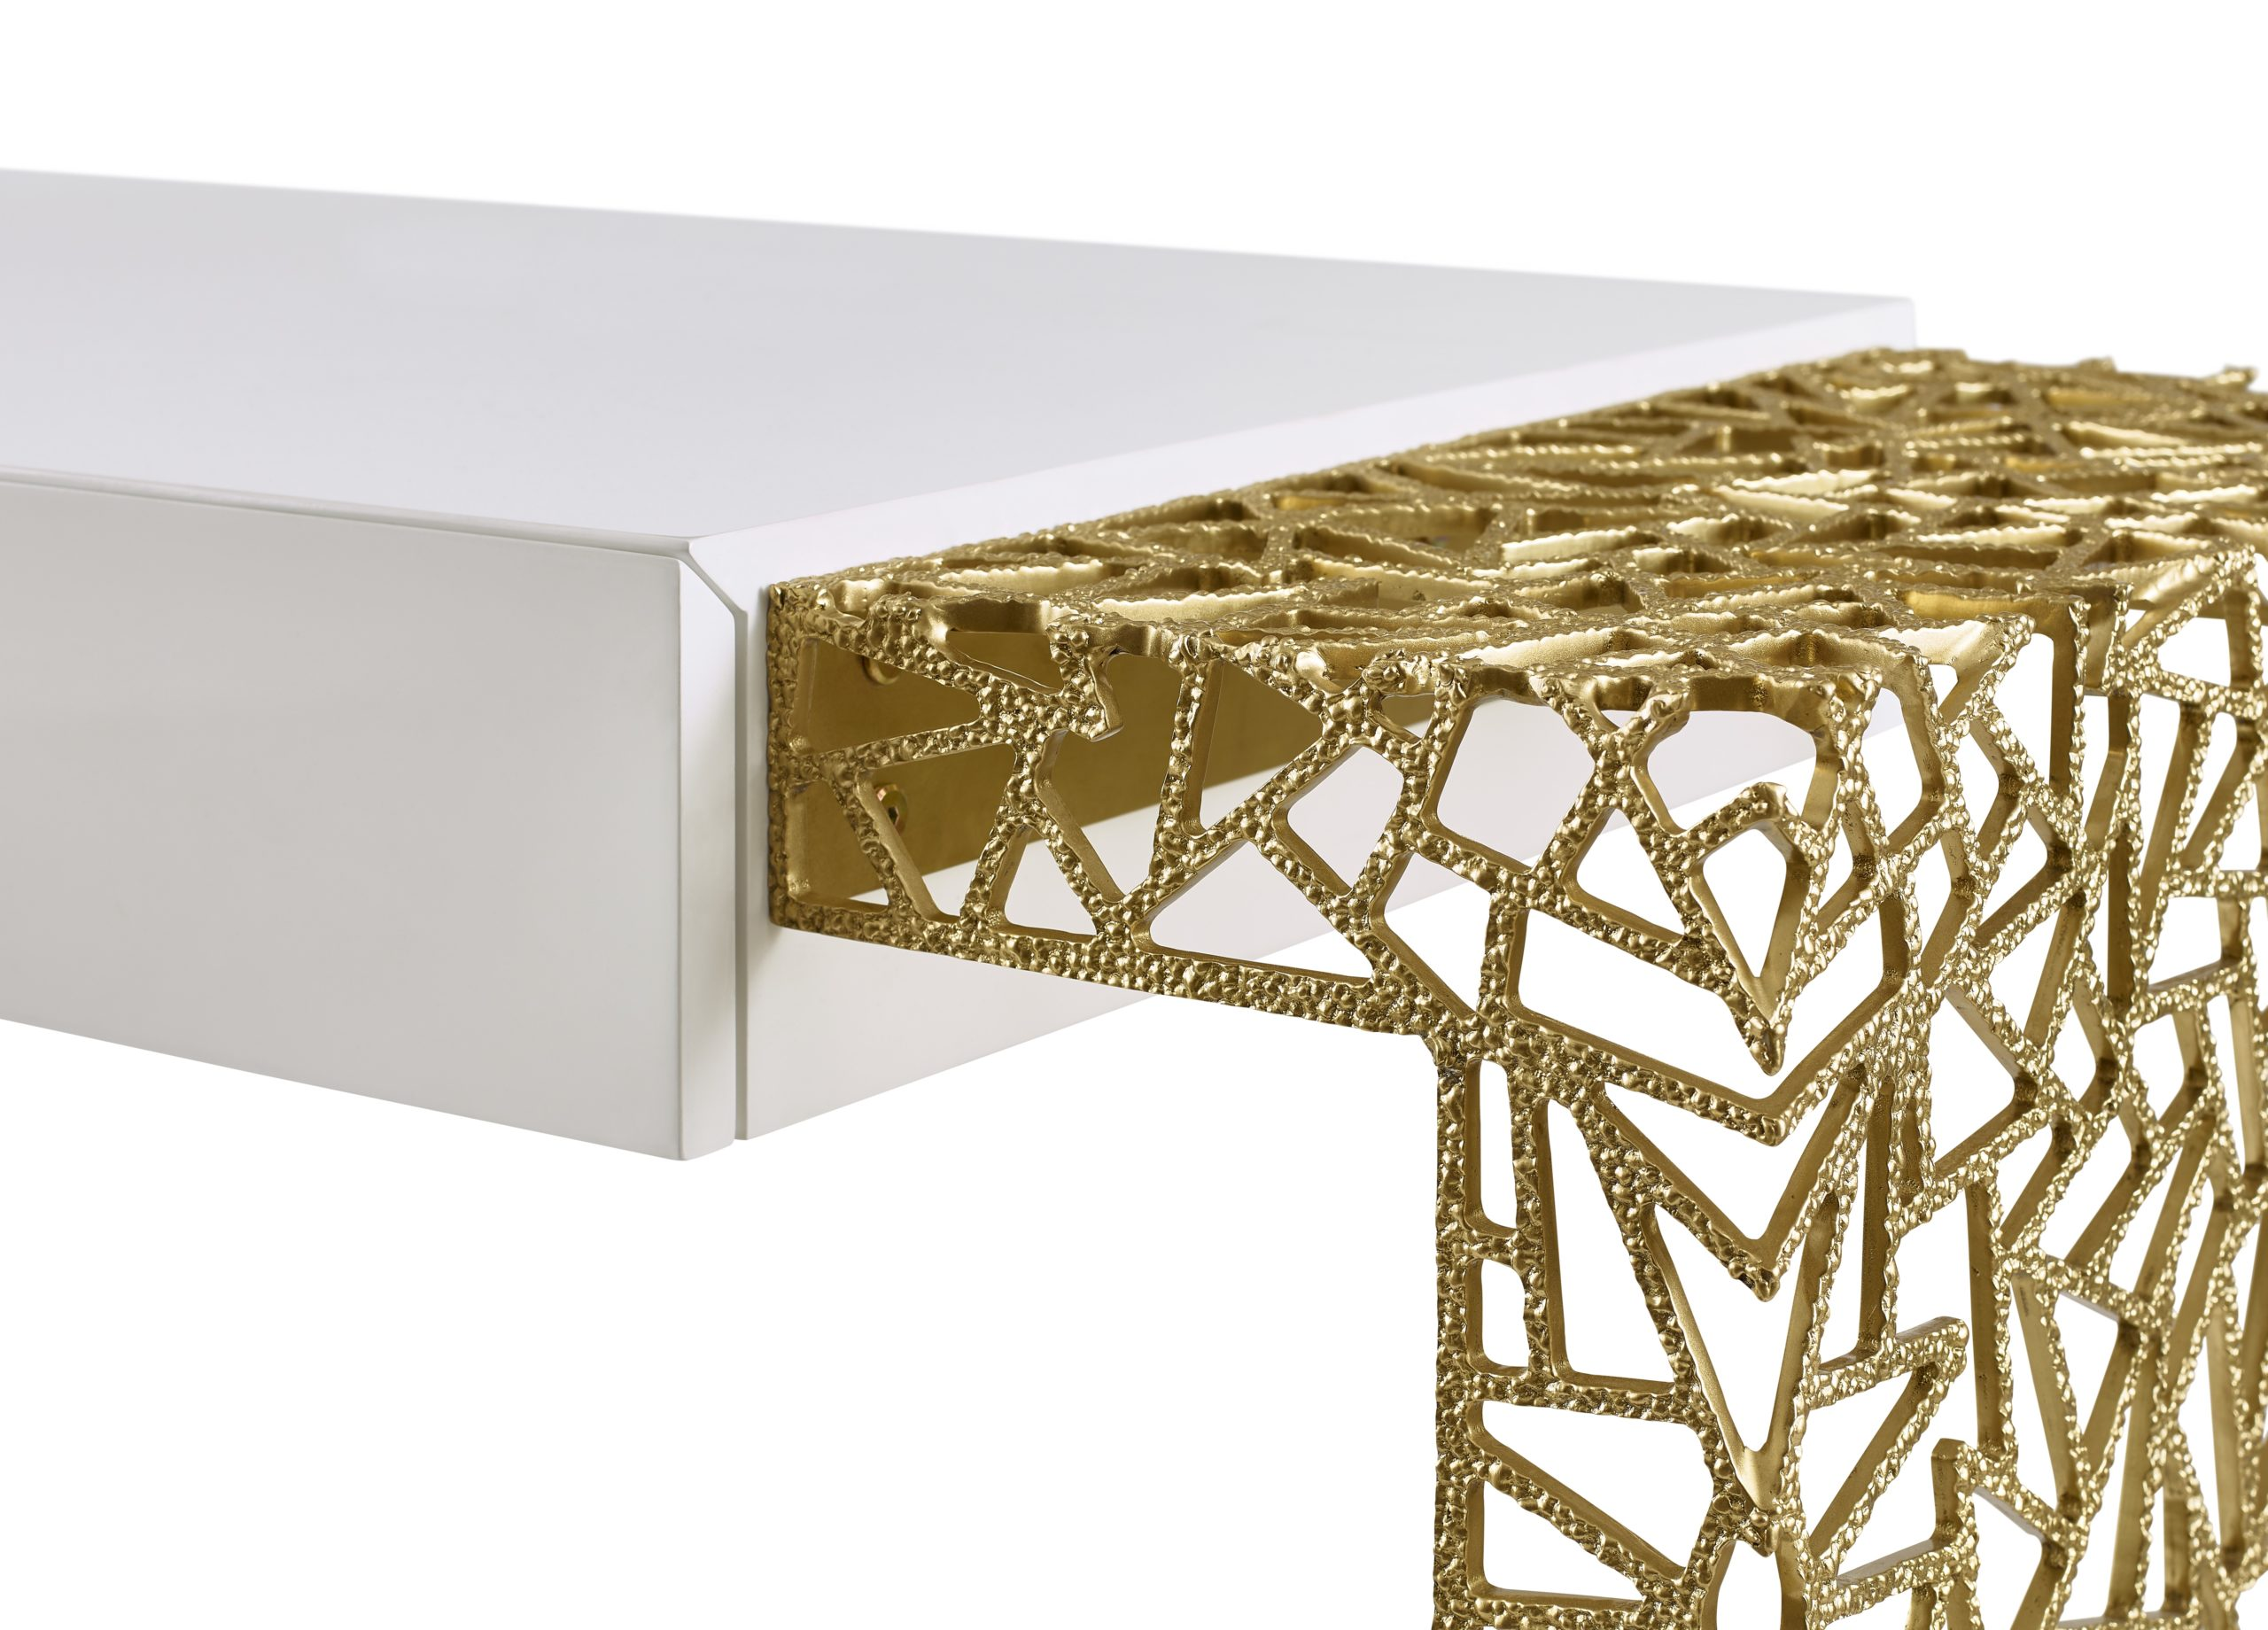 Baker_products_WNWN_fractal_desk_BAA3265_DETAIL-scaled-1